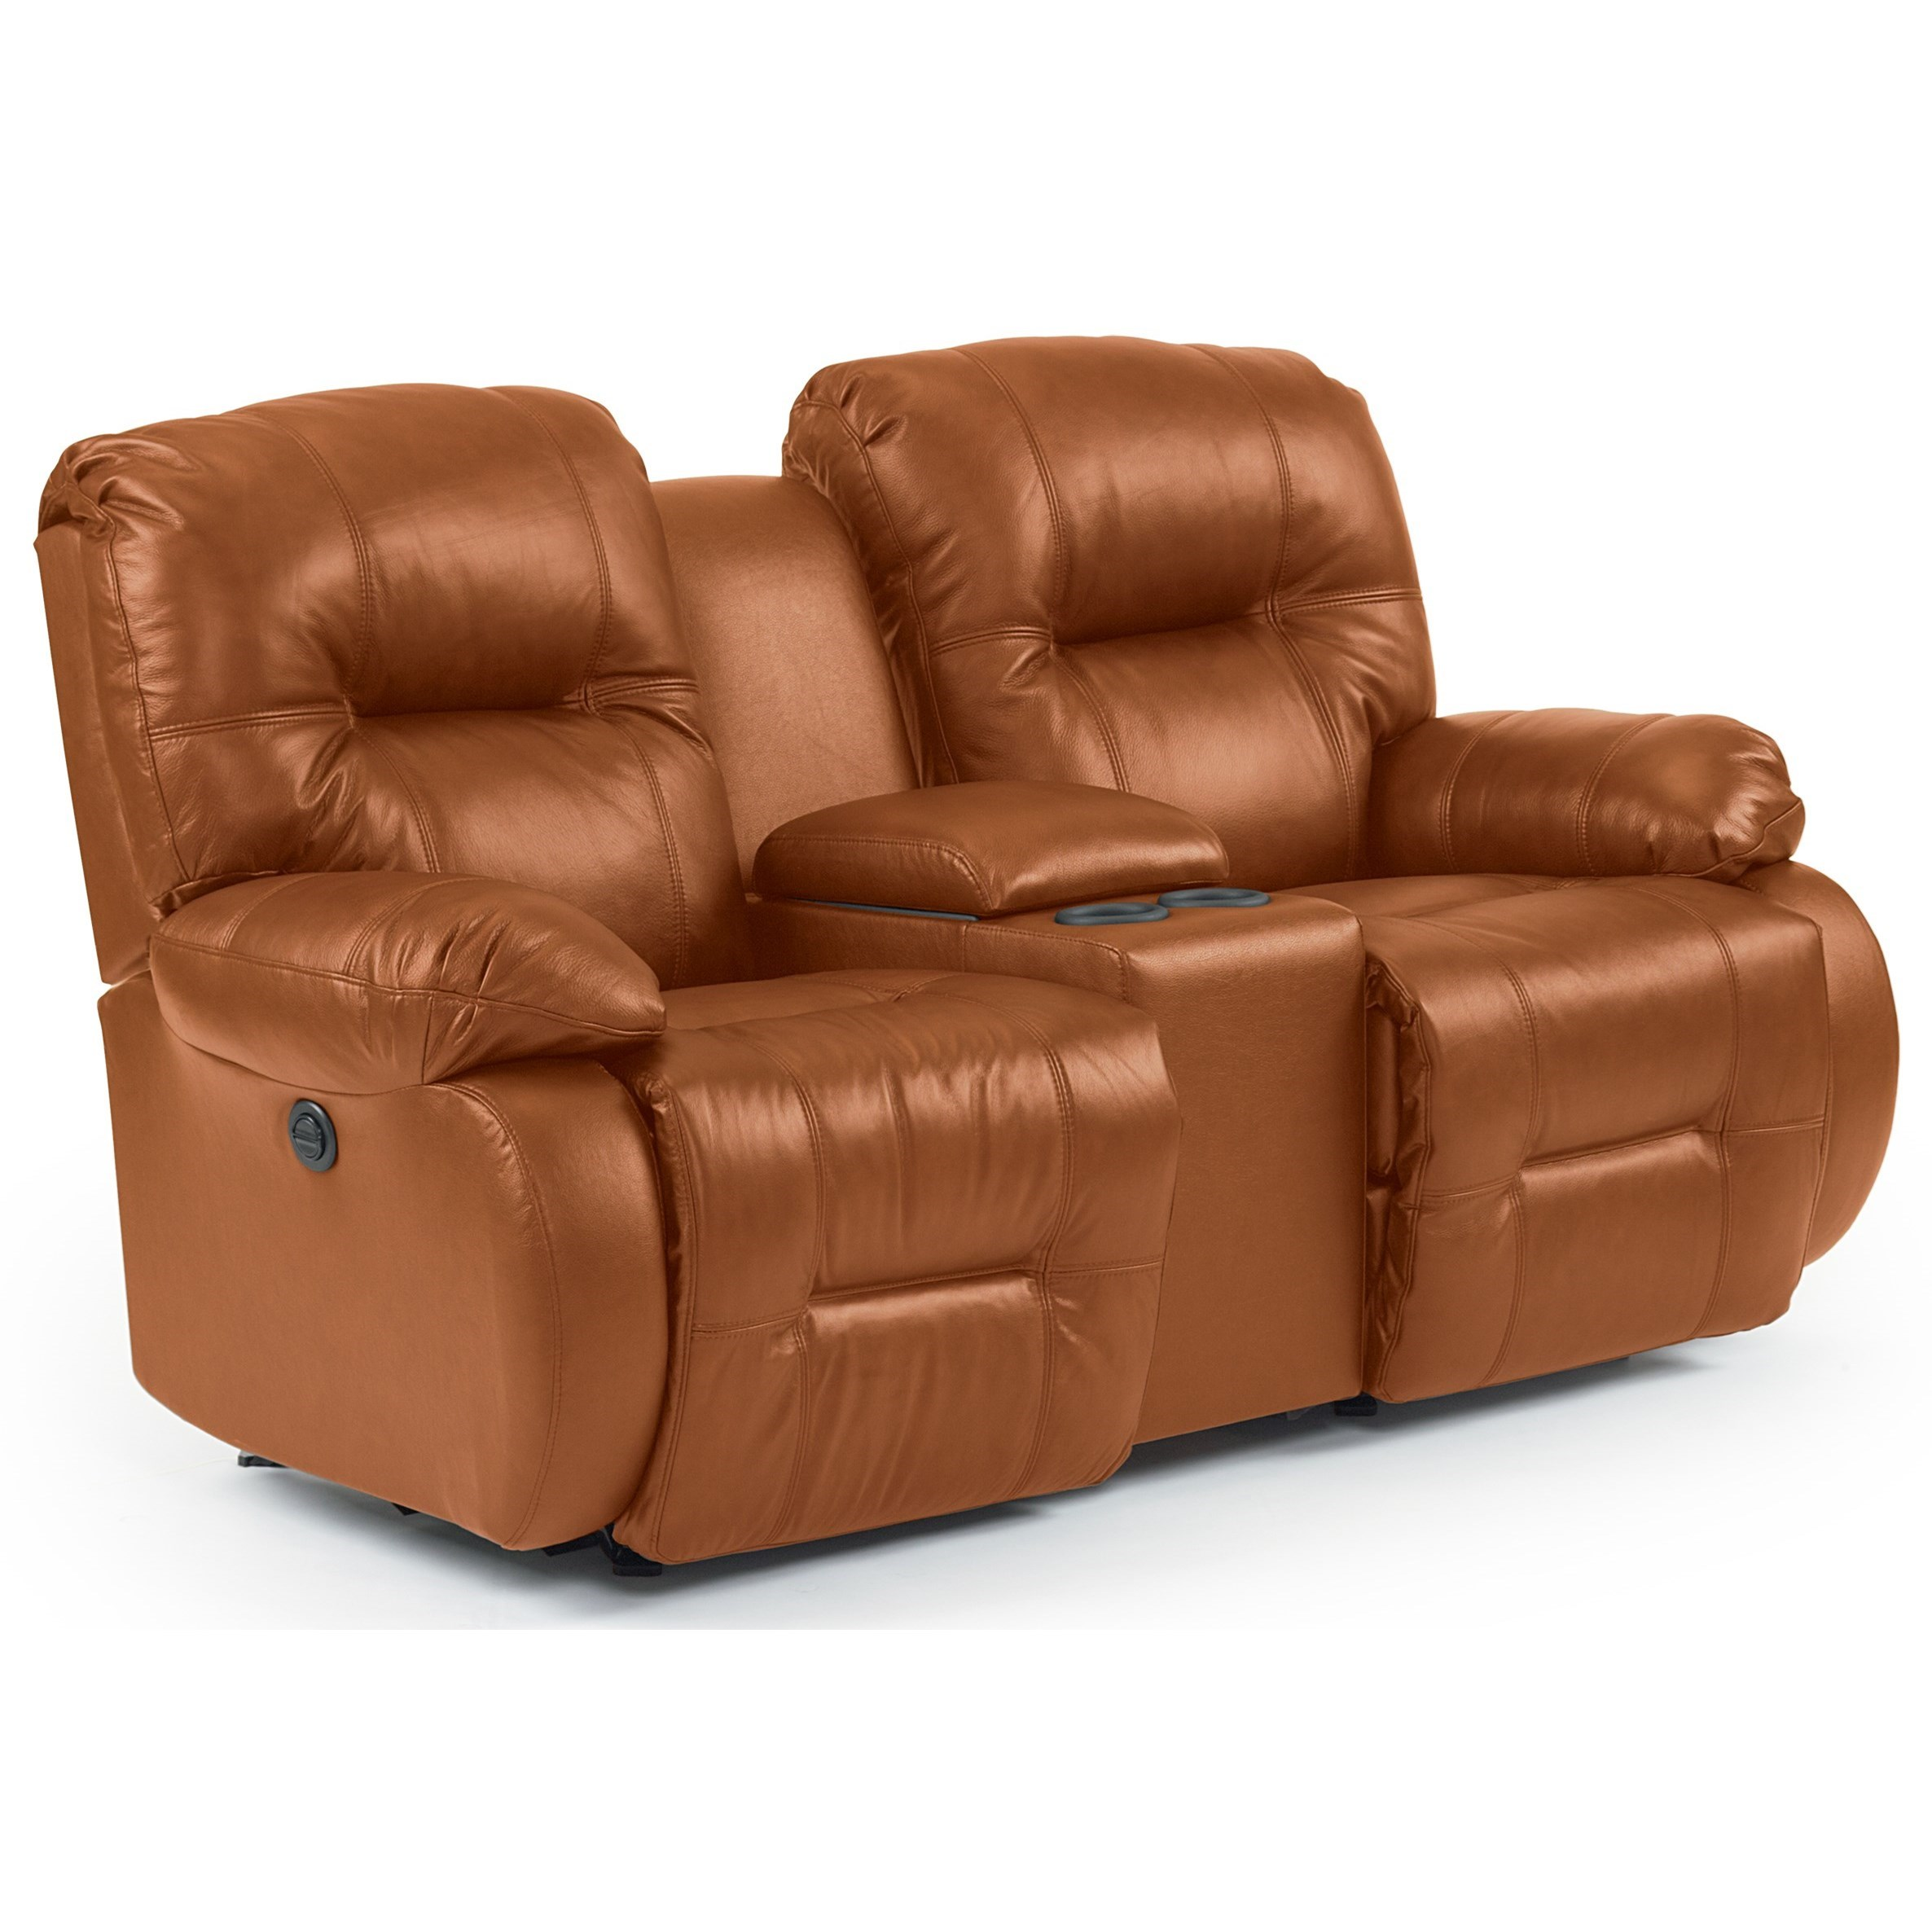 Brinley 2 Power Space Saver Console Loveseat by Best Home Furnishings at EFO Furniture Outlet